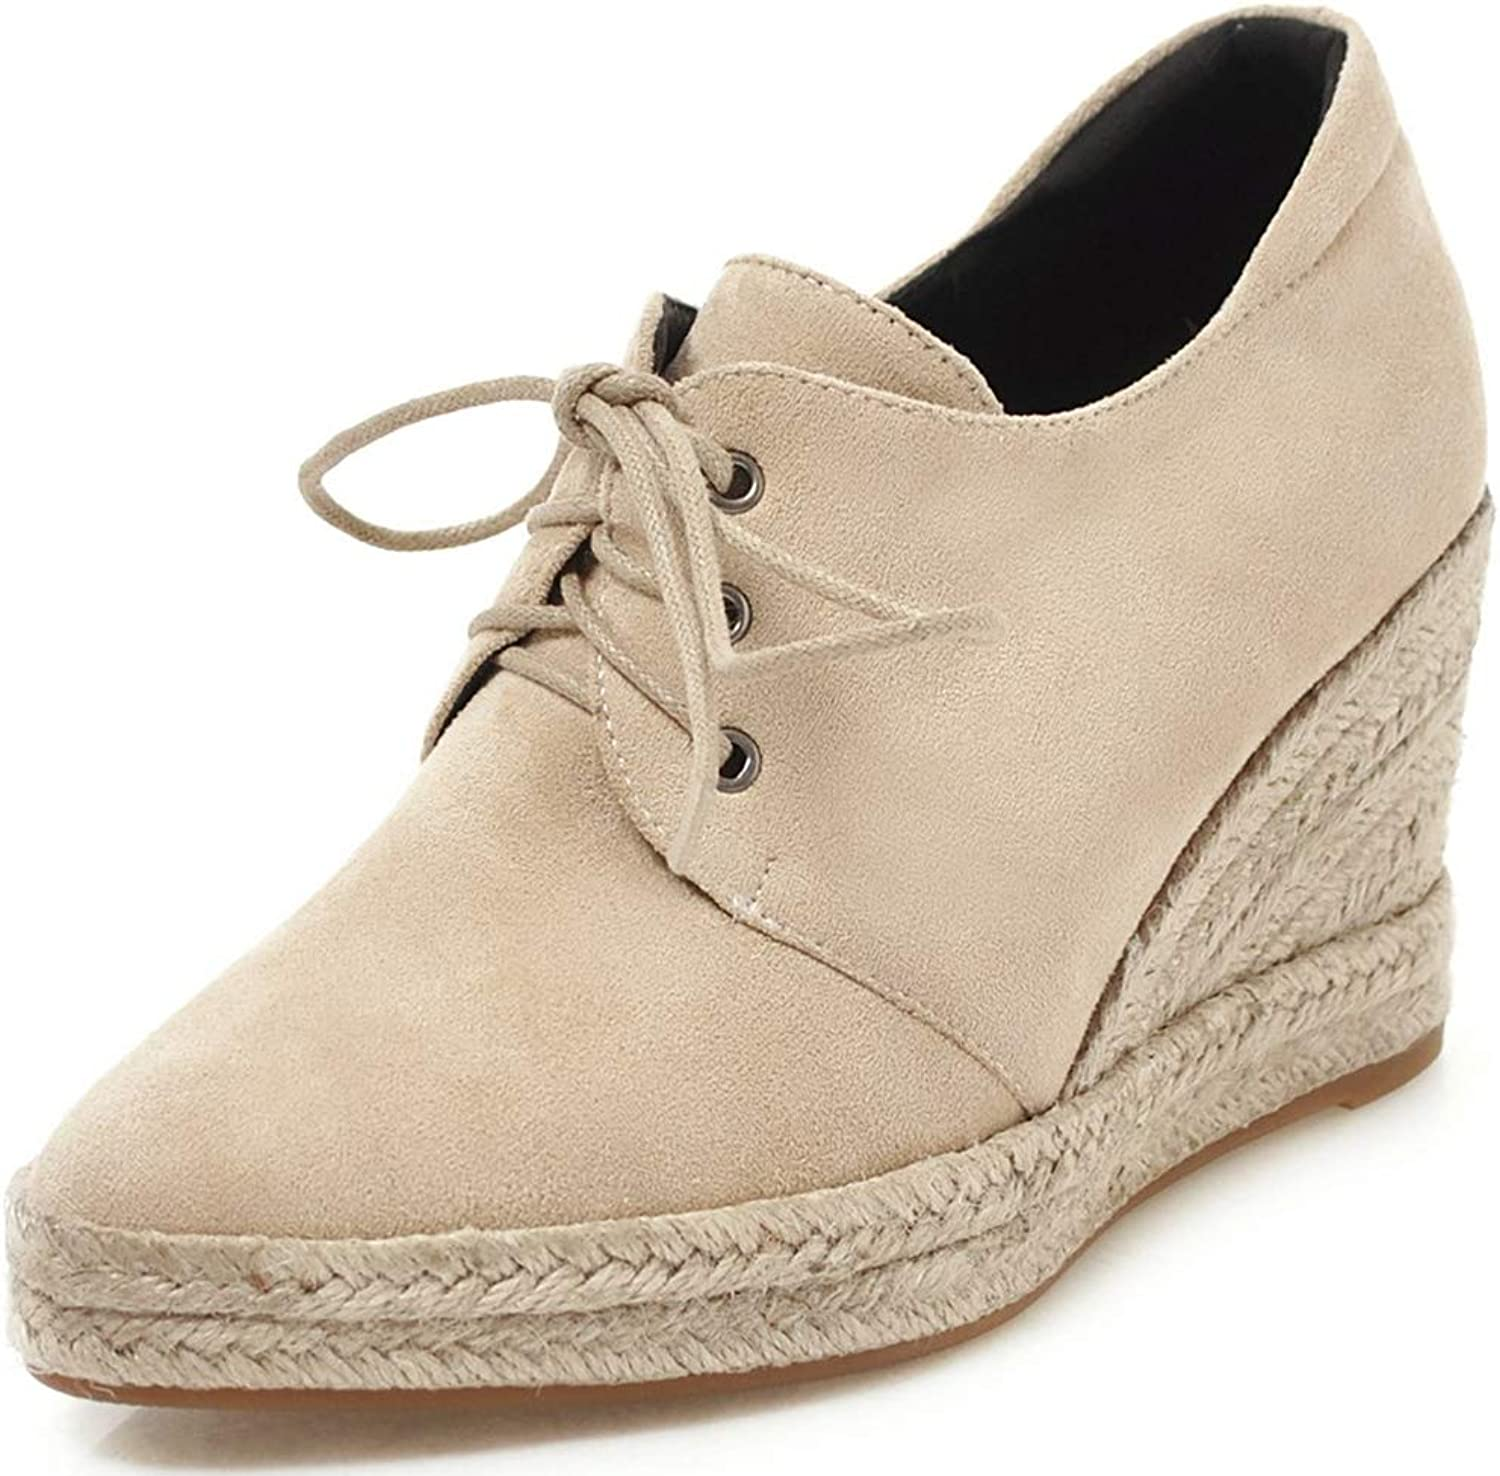 SaraIris Women's Fashion Espadrilles Wedge Heel Lace up Autumu Spring Ankle Booties